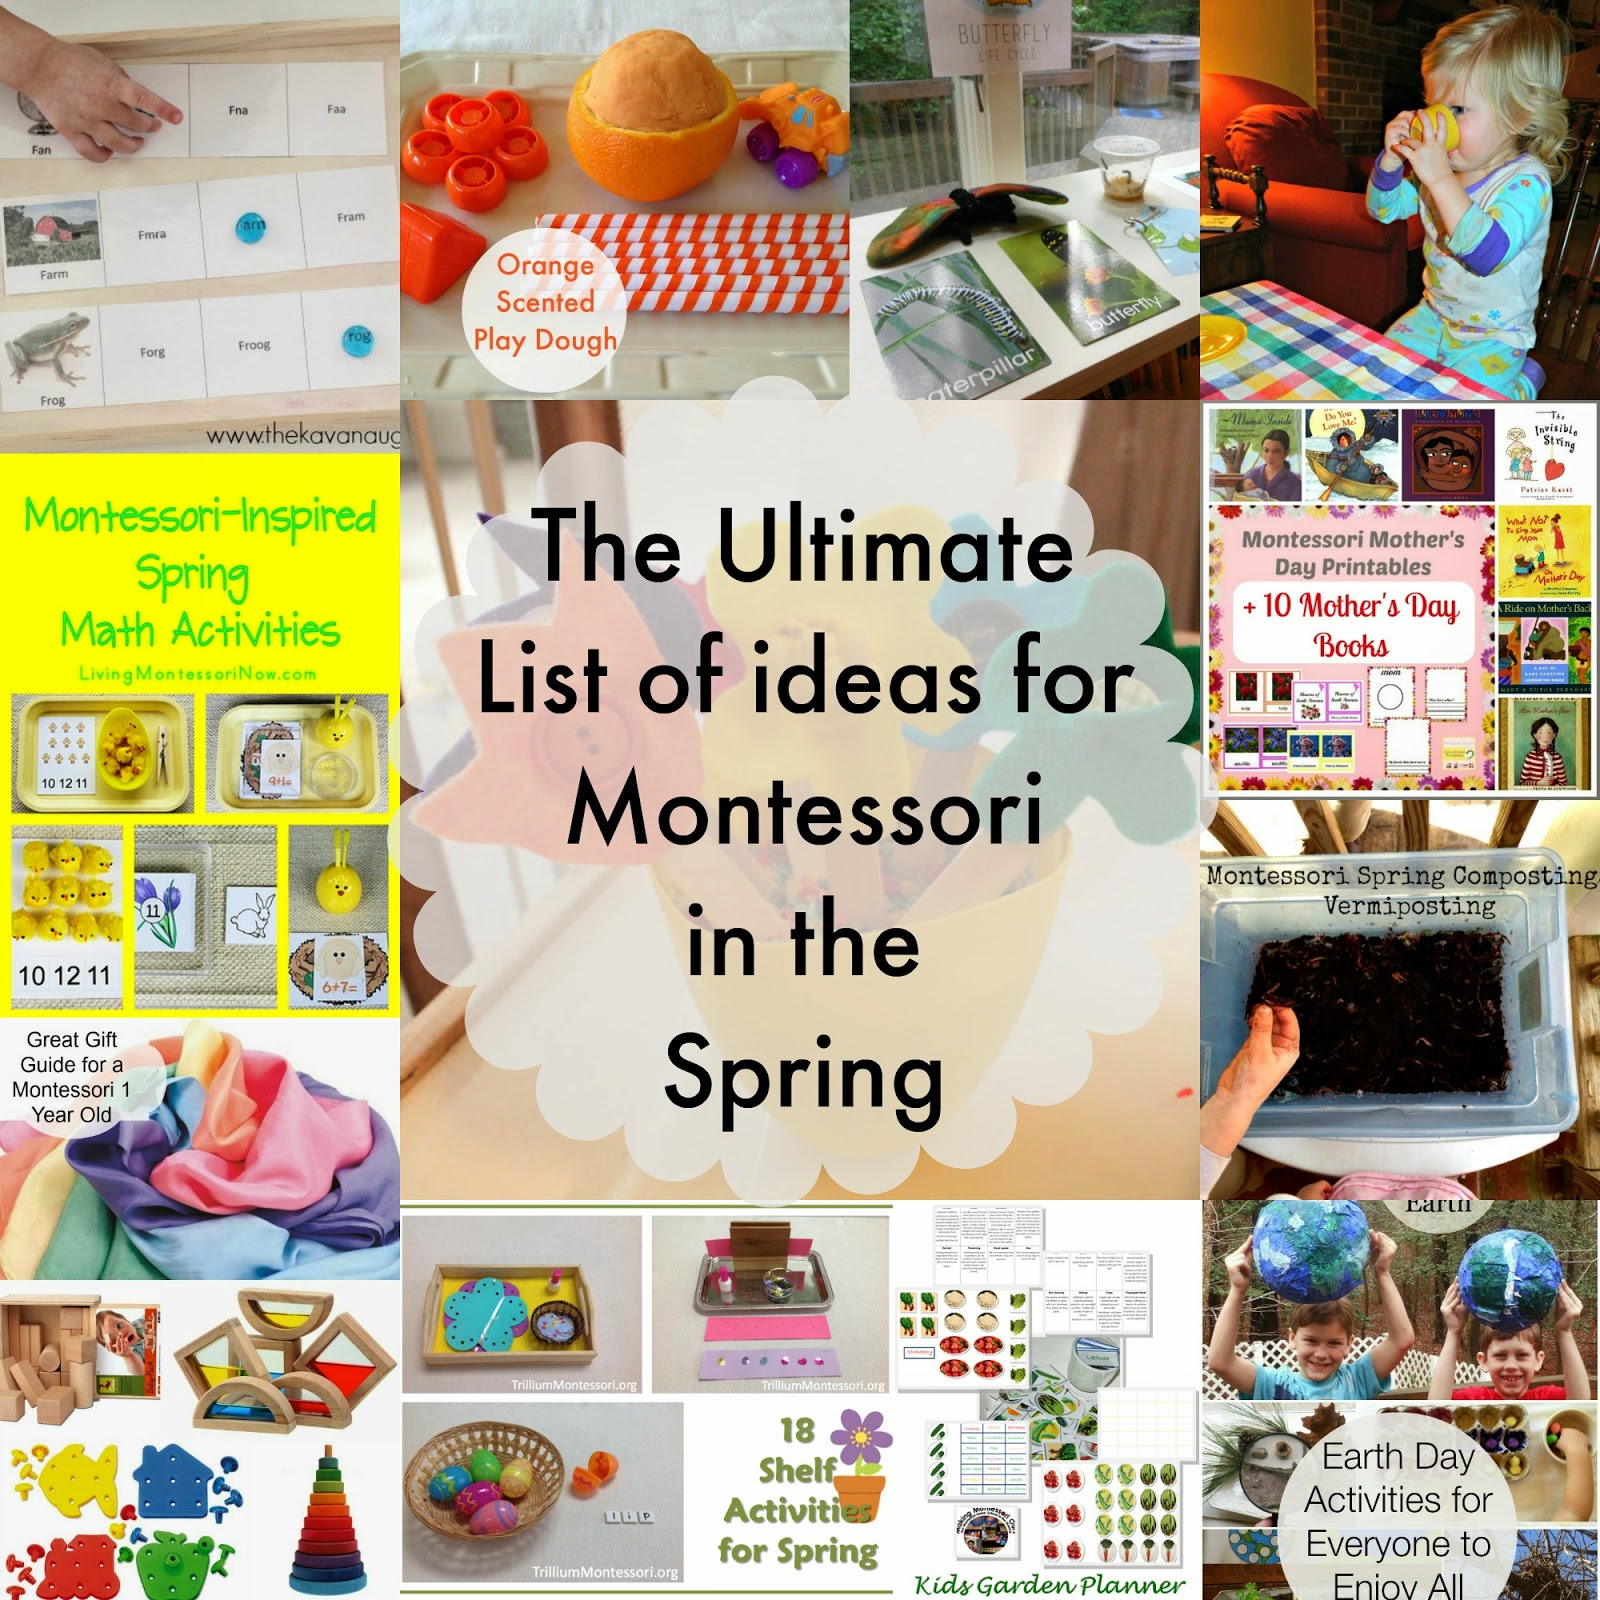 Spring Montessori Activities, Spring Activities for kids, Printables, Nature, Sensory Play, Animals, Birds, Flowers, crafts, www.naturalbeachliving.com